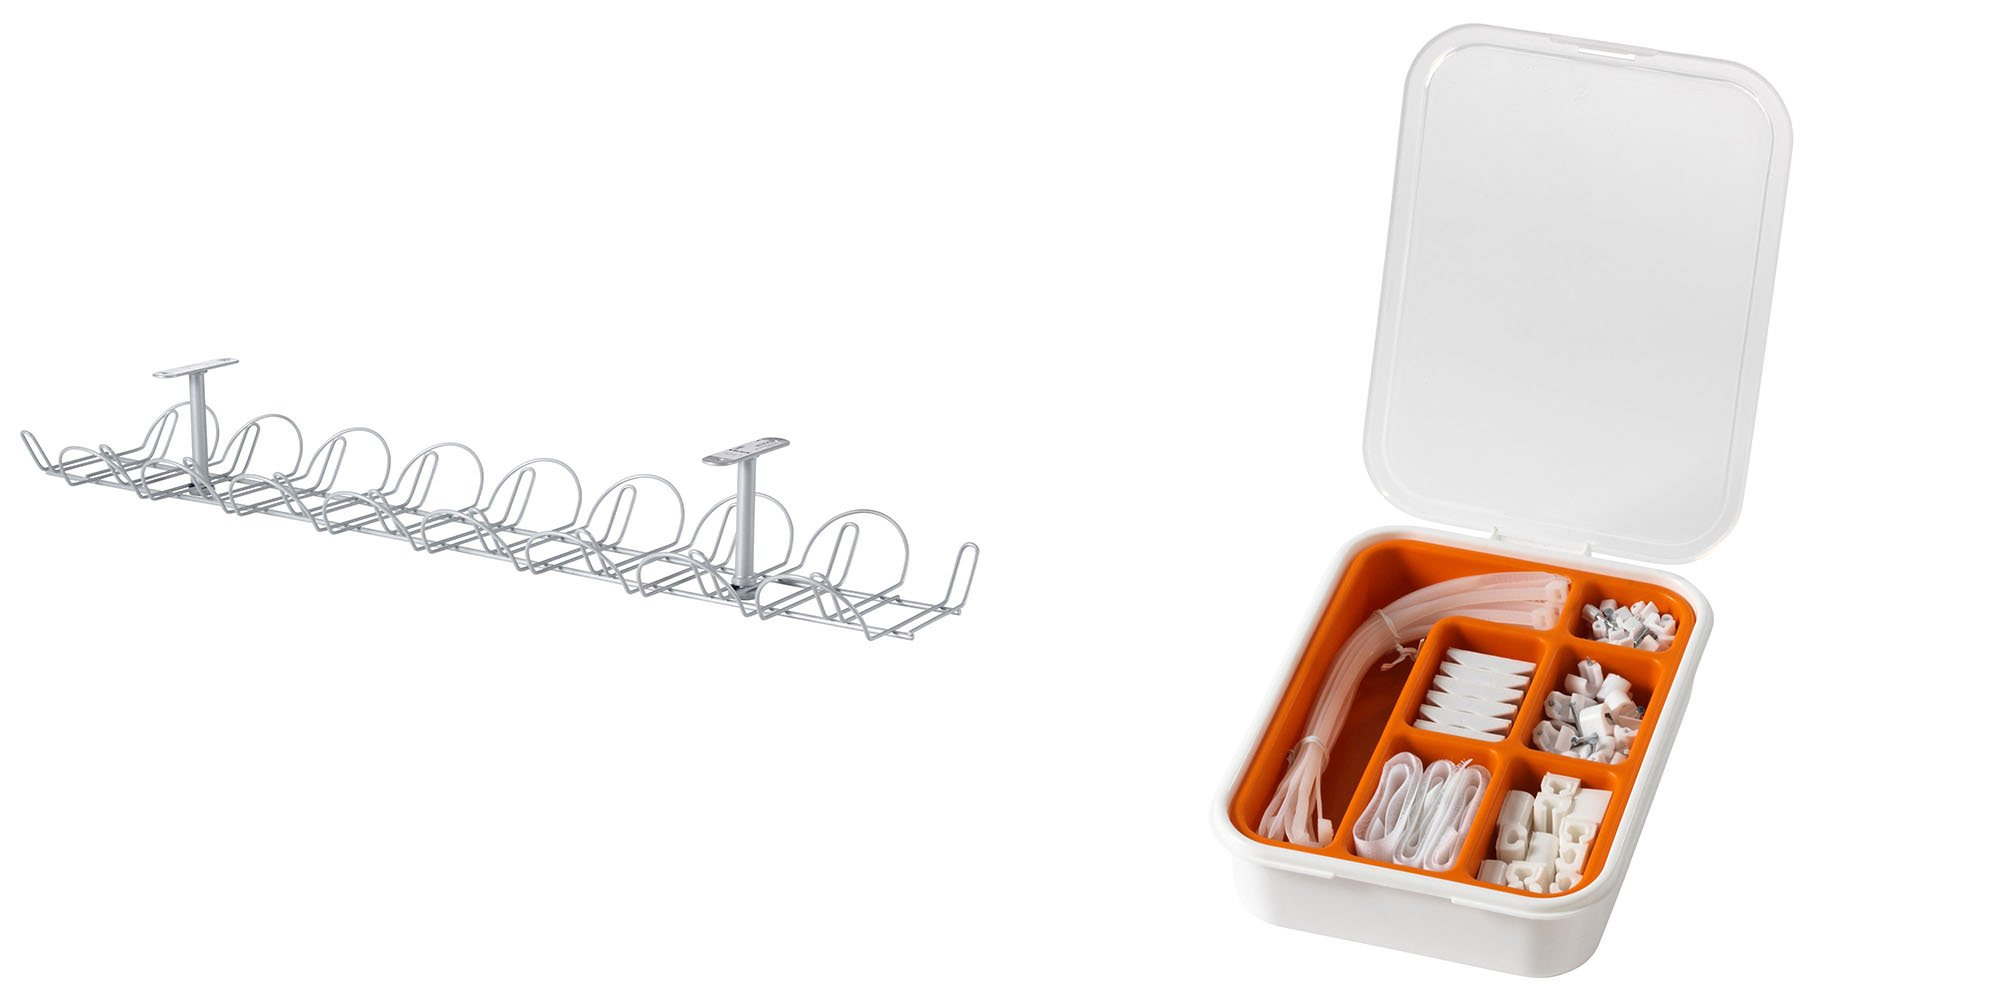 Ikea Cable Management Bundle Includes - Two Ikea Signum Cable Management Horizontal (Silver, 27 ½'') and One Ikea Fixa (114 Piece Cable Management Set)